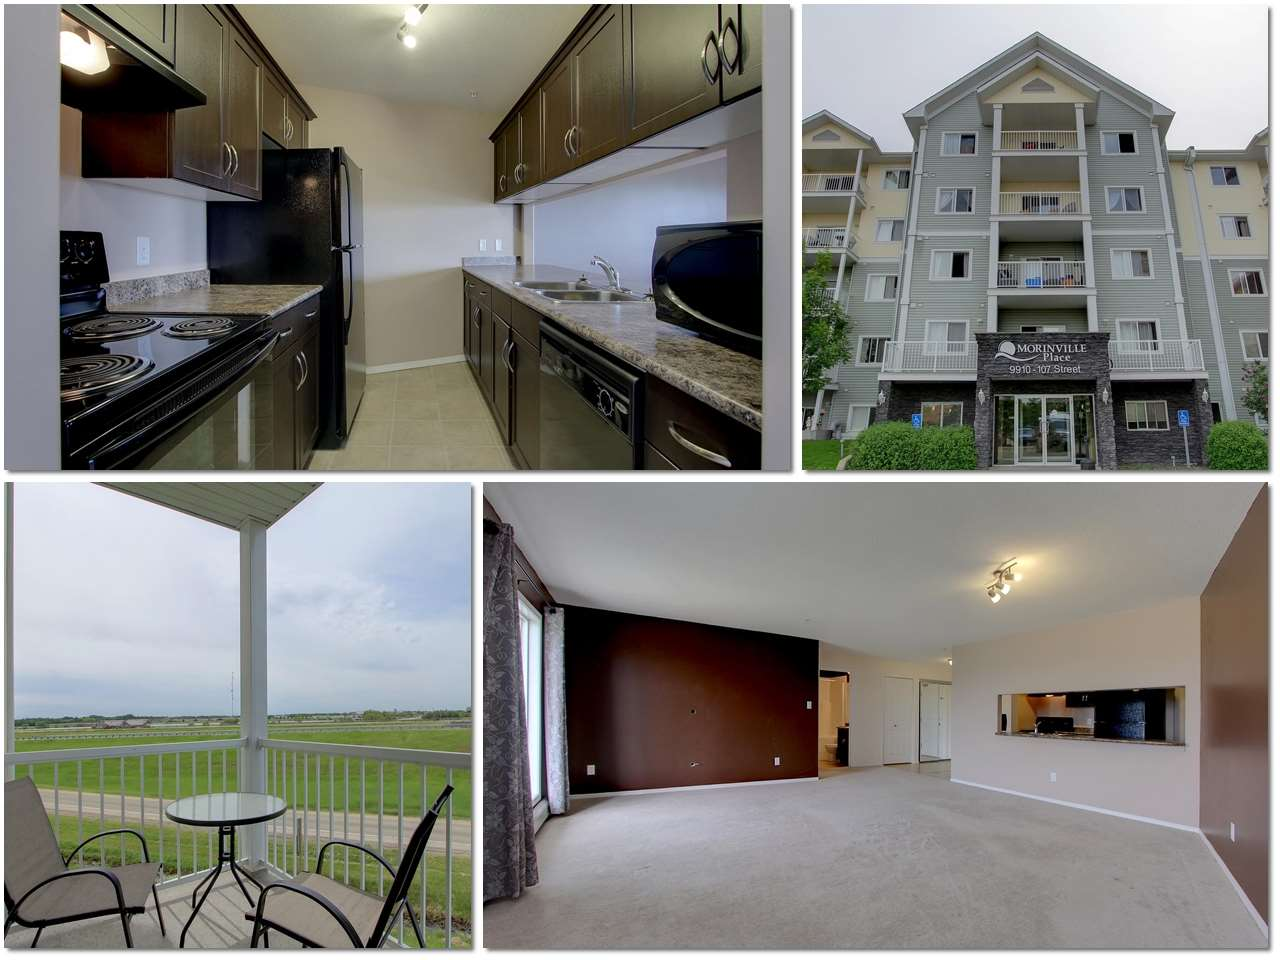 Main Photo: : Morinville Condo for sale : MLS(r) # E4068392